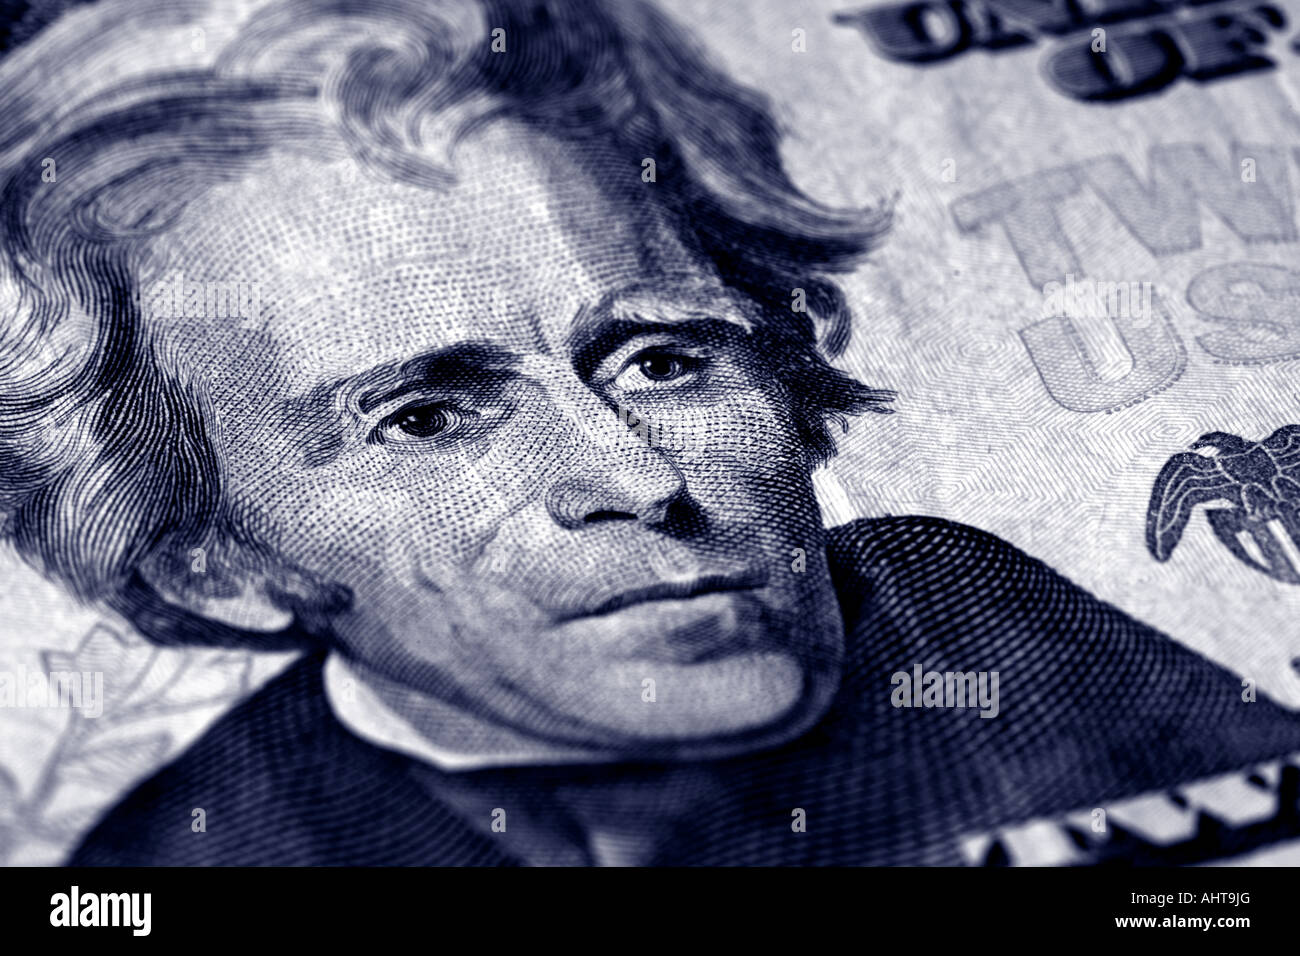 should andrew jackson remain on 20 Jackson should remain on our $20 bill -- a reminder of the human potential for both strength and weakness in this country, we have risen to the occasion with honor as many times as we have fallen .